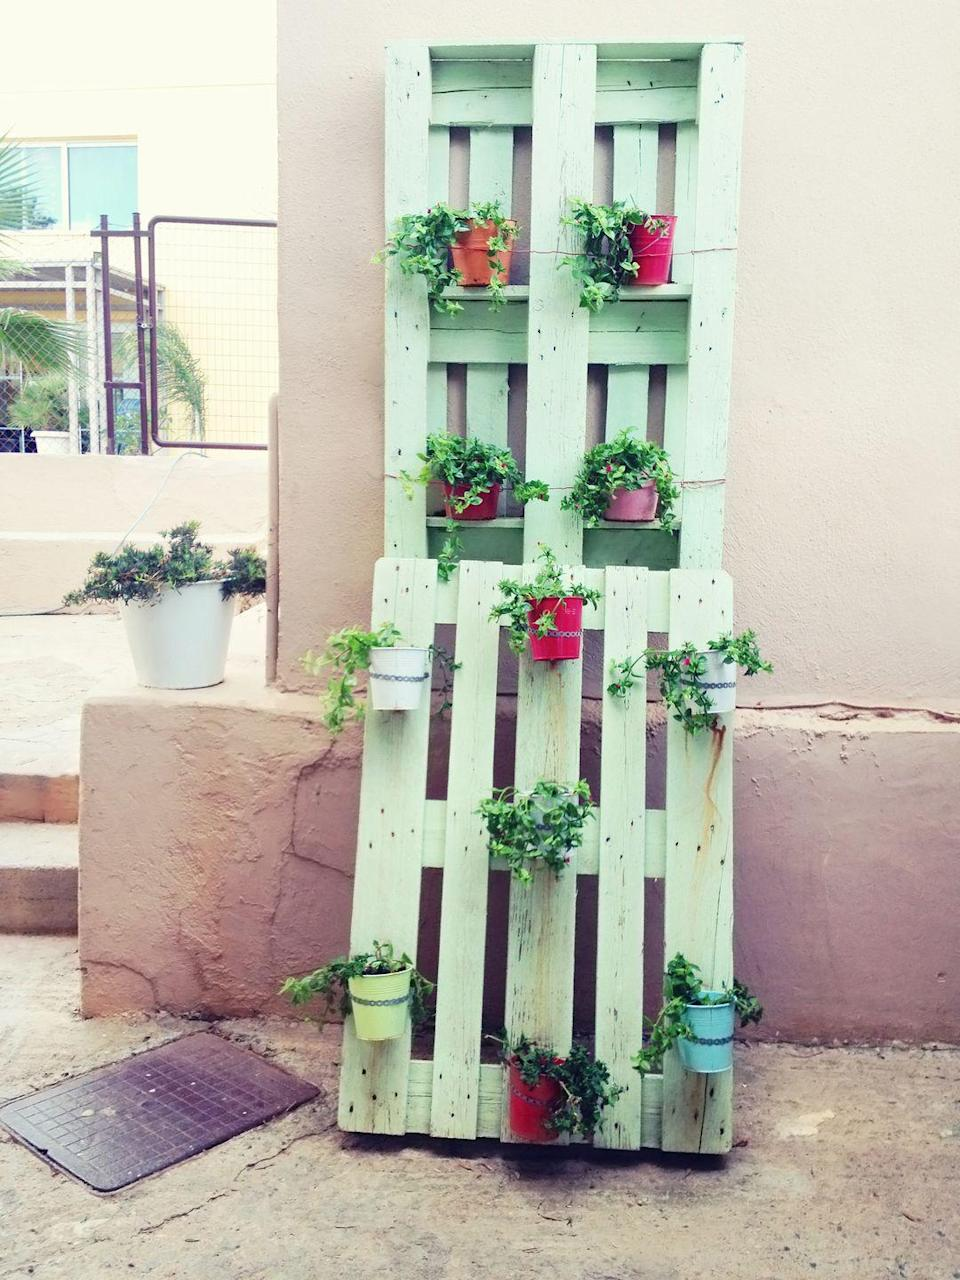 <p>One of the most cost-effective garden ideas is to simply upcycle! You can give old and tired furniture in your home a new lease of life in the garden. Old sinks and dressing tables can be turned into quirky planters, or you could use pallets.</p>